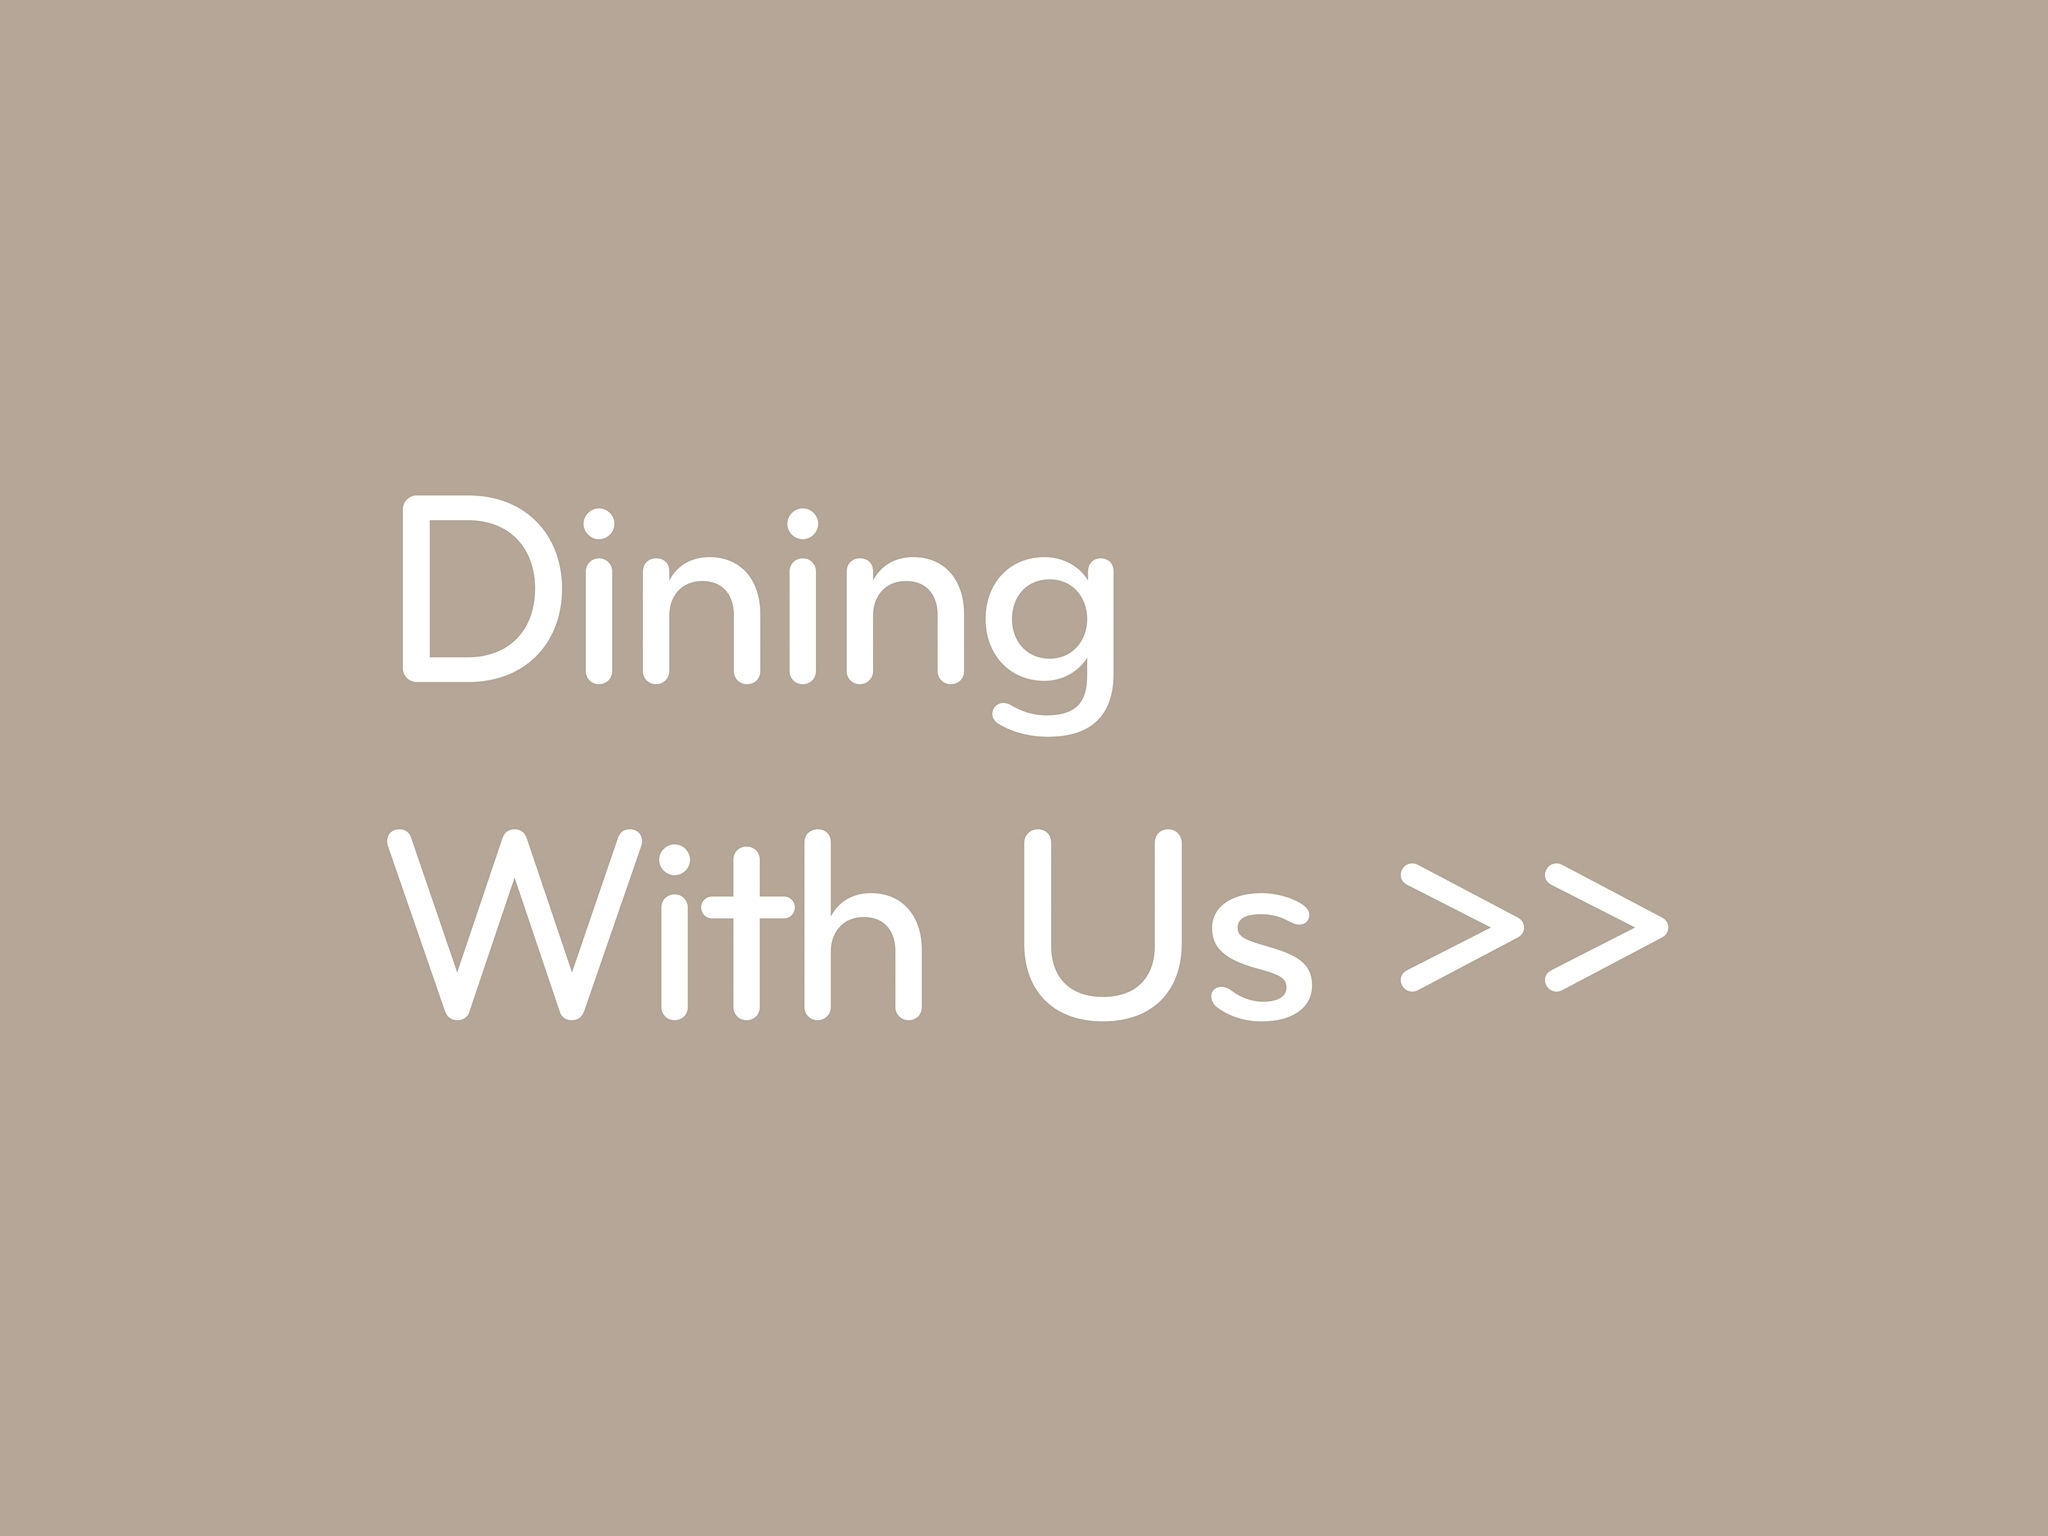 Dining with us